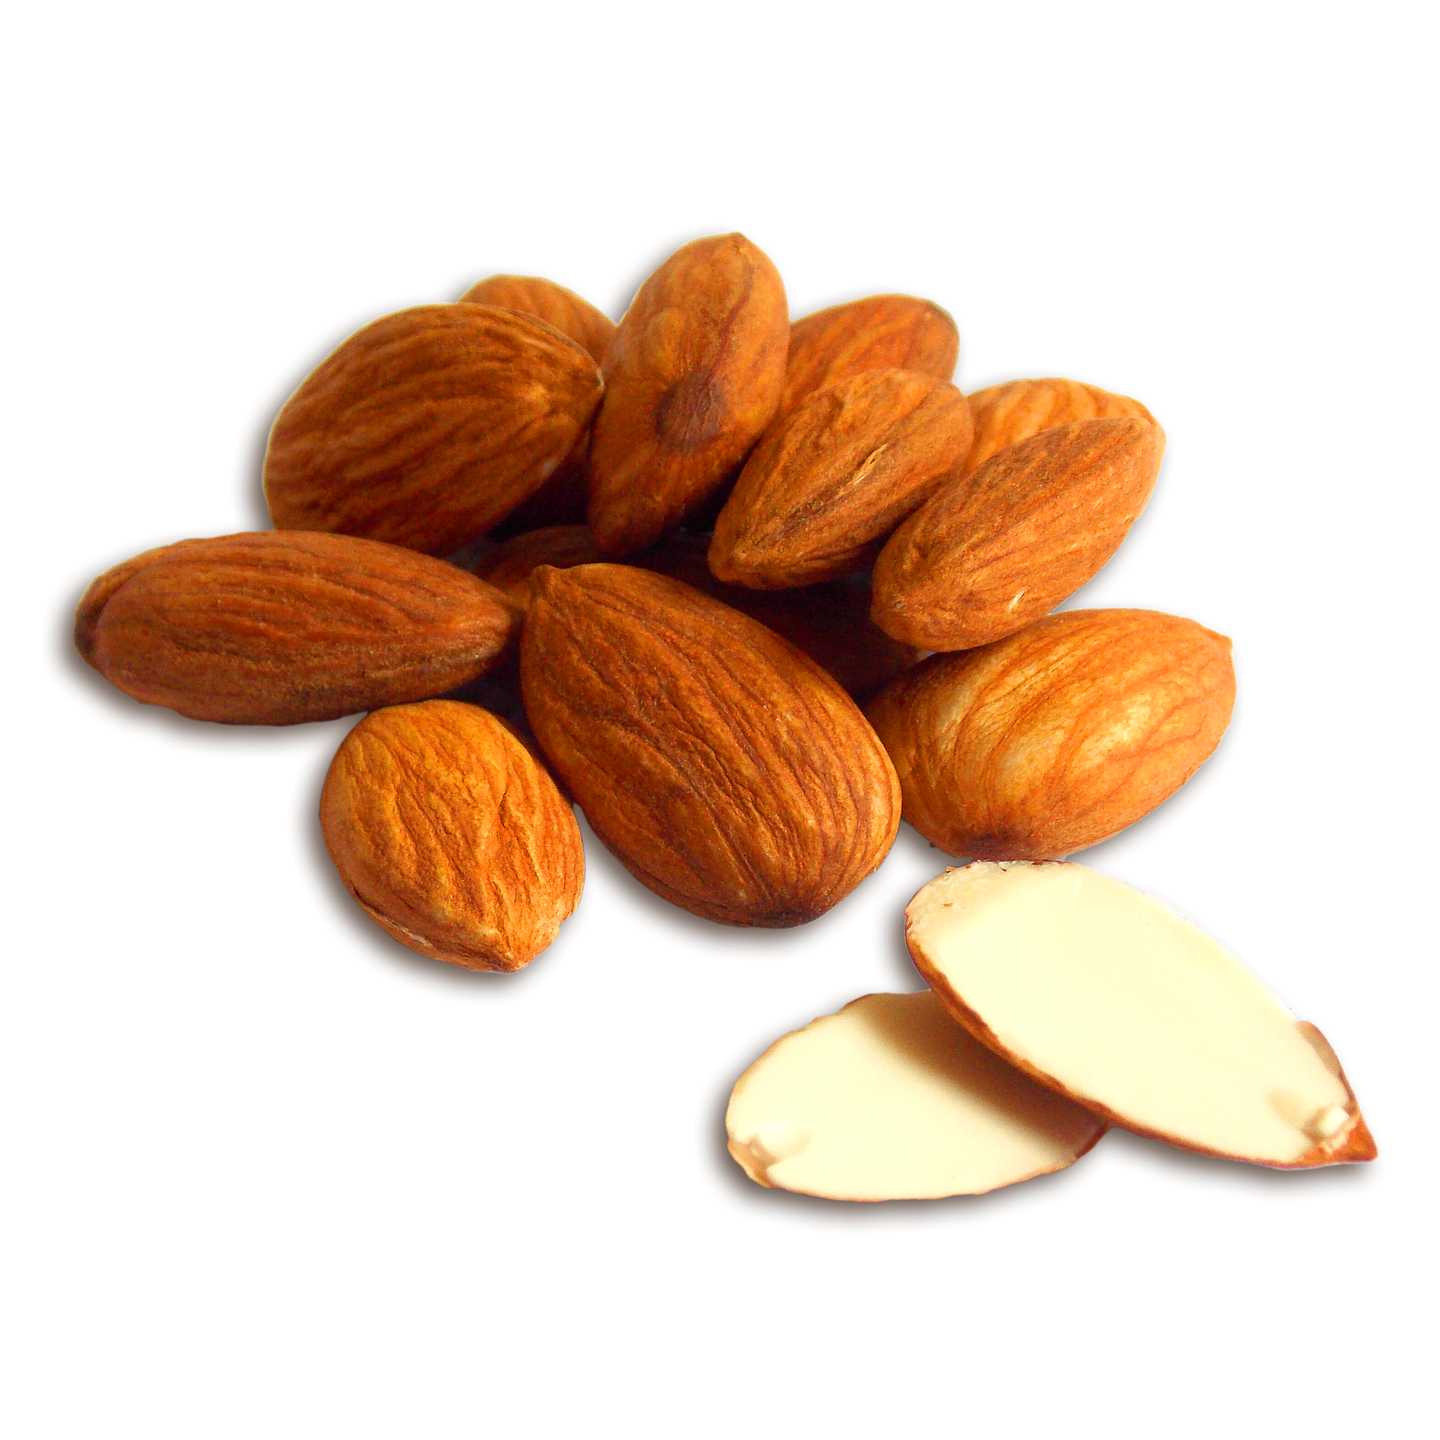 Genome Reveals How Almonds Went from Deadly to Delicious